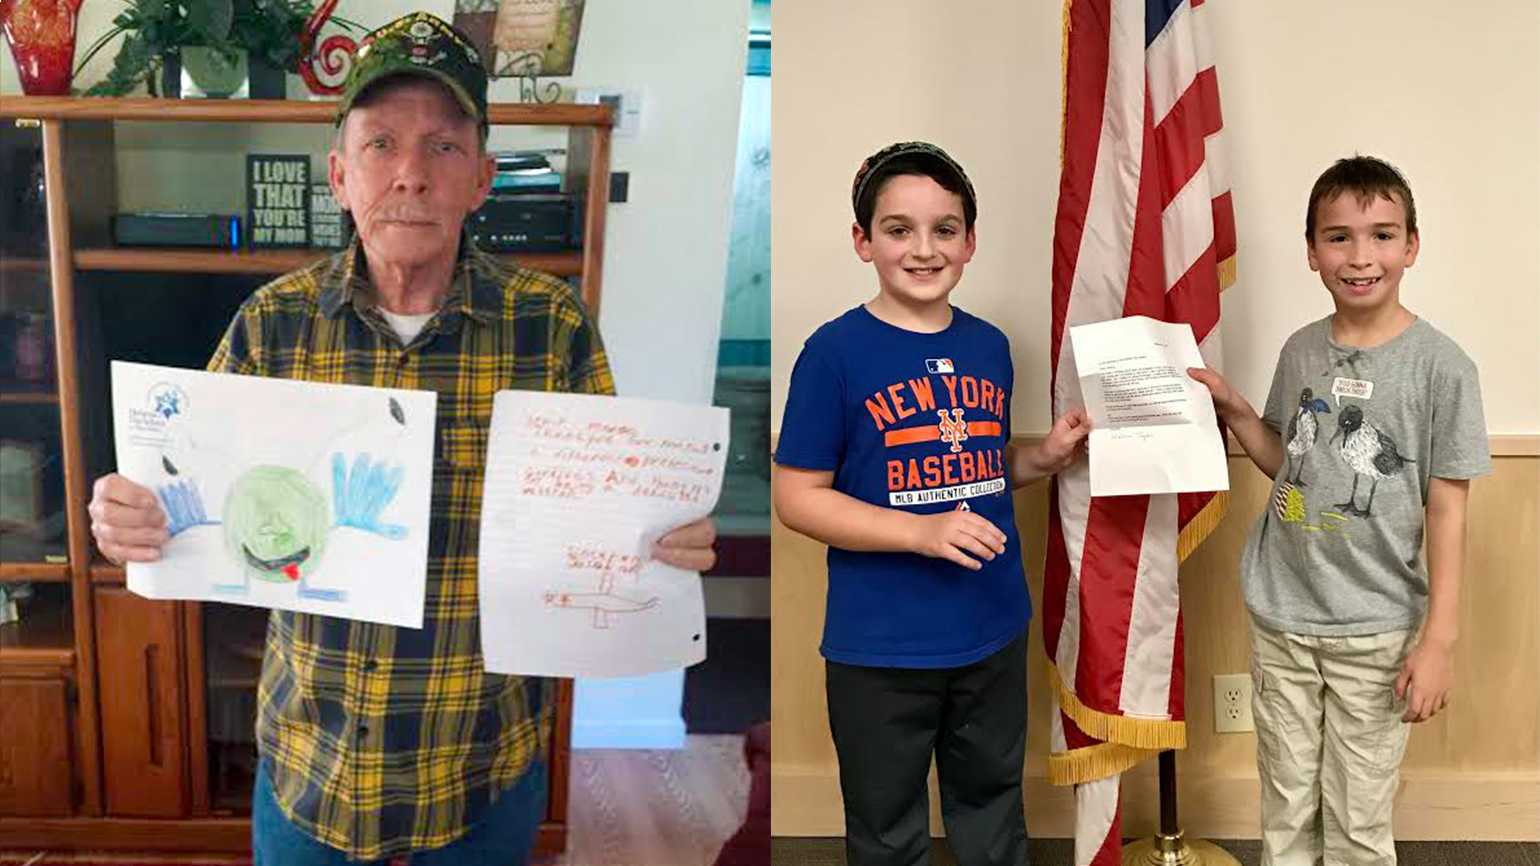 """Vietnam vet William """"Tommy"""" Taylor and his new friends, Jacob and Jordan"""